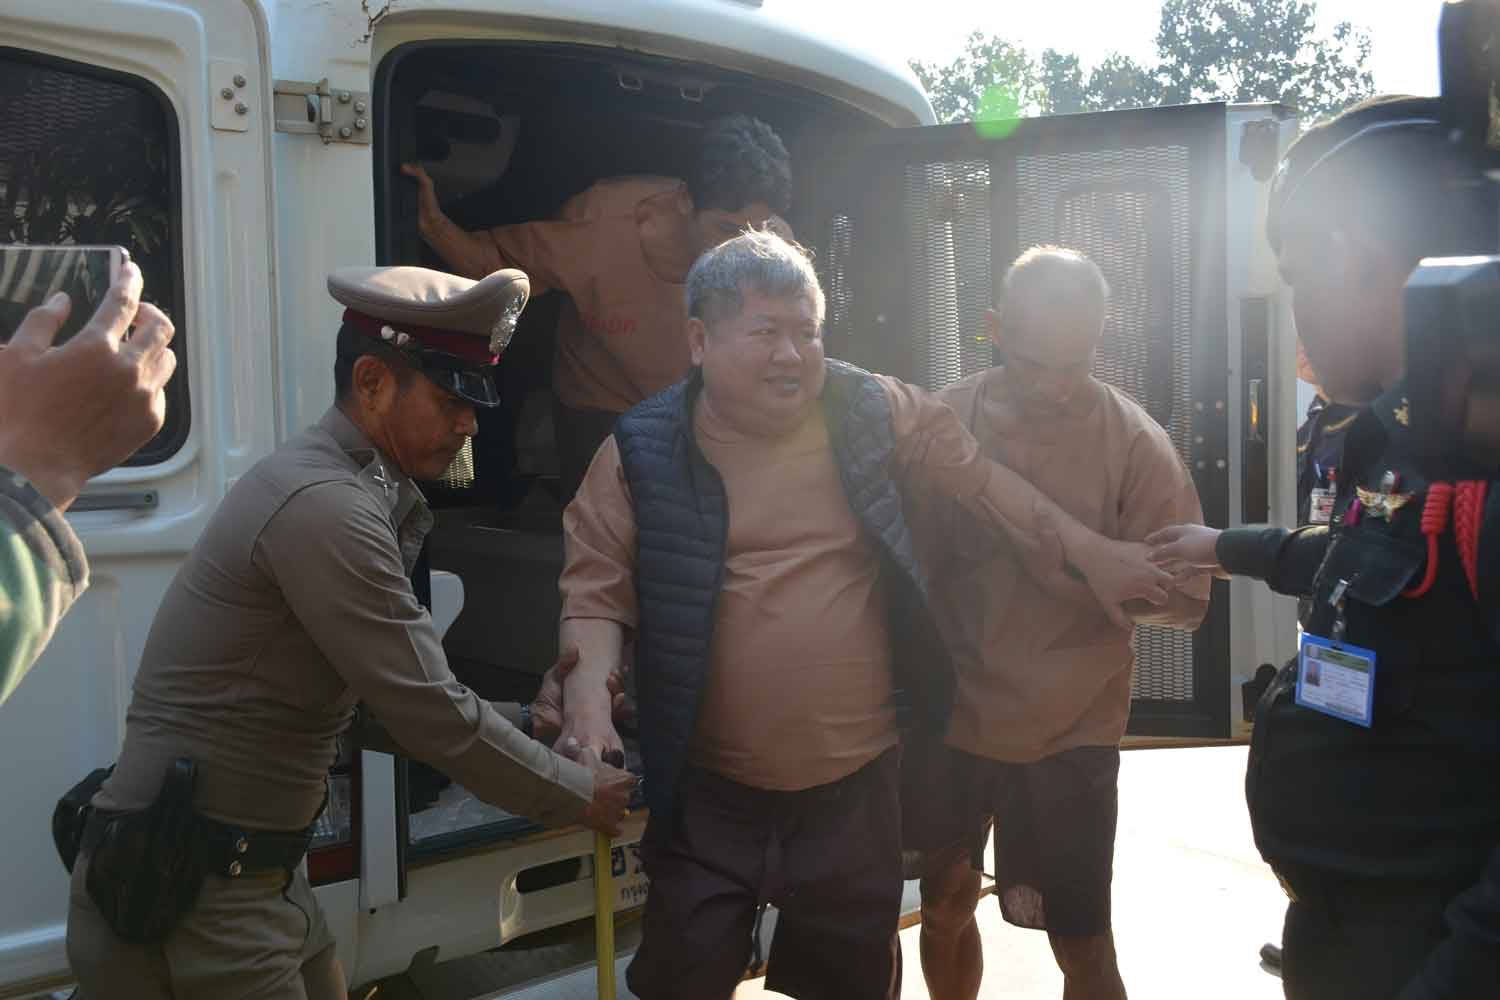 Construction billionaire Premchai Karnasuta is helped out of the prison truck as he arrives at the Thong Pha Phum Court in Kanchanaburi province on Friday morning. (Photo by Piyarat Chongcharoen)